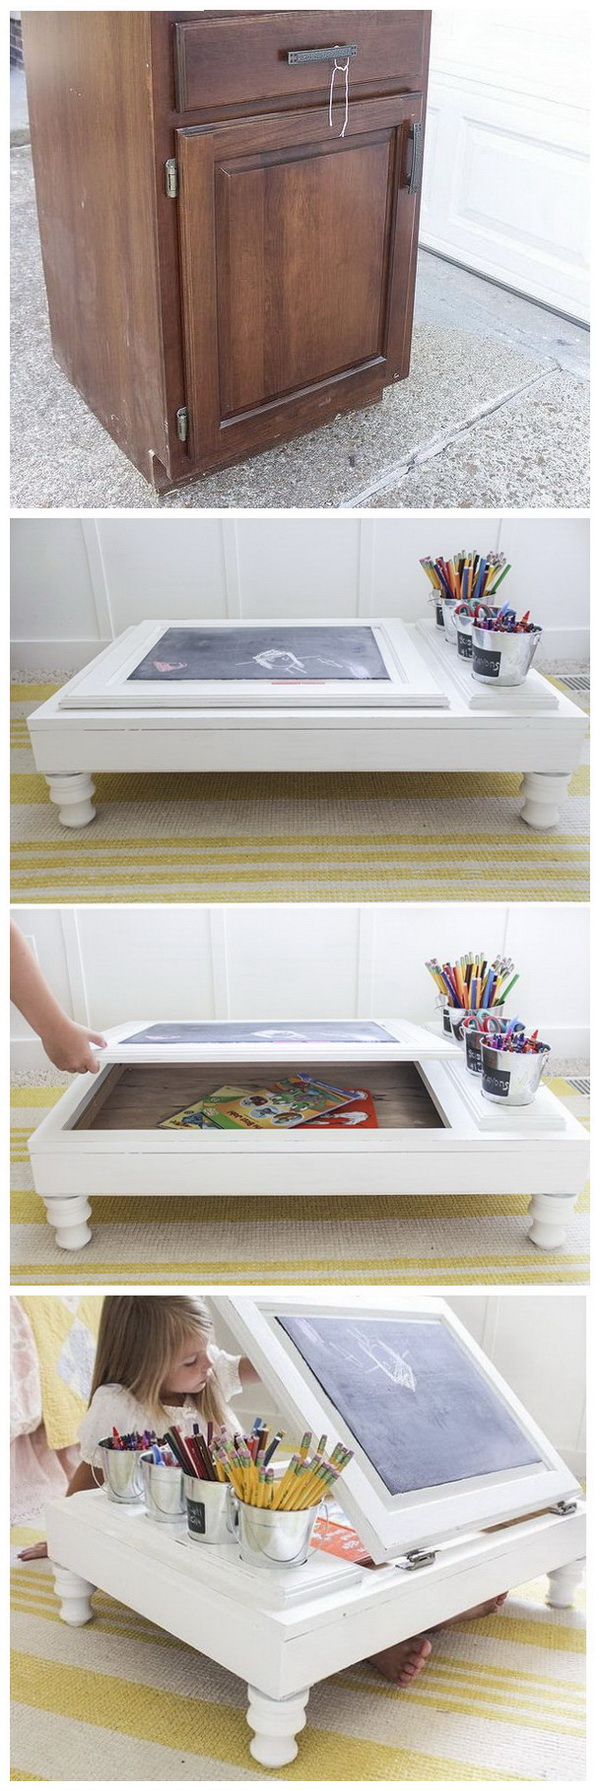 DIY Child's Desk with Kitchen Cabinet: Never throw away old cabinets next time. Repurpose them into a portable desk for your elementary-aged child with the tutorial here.